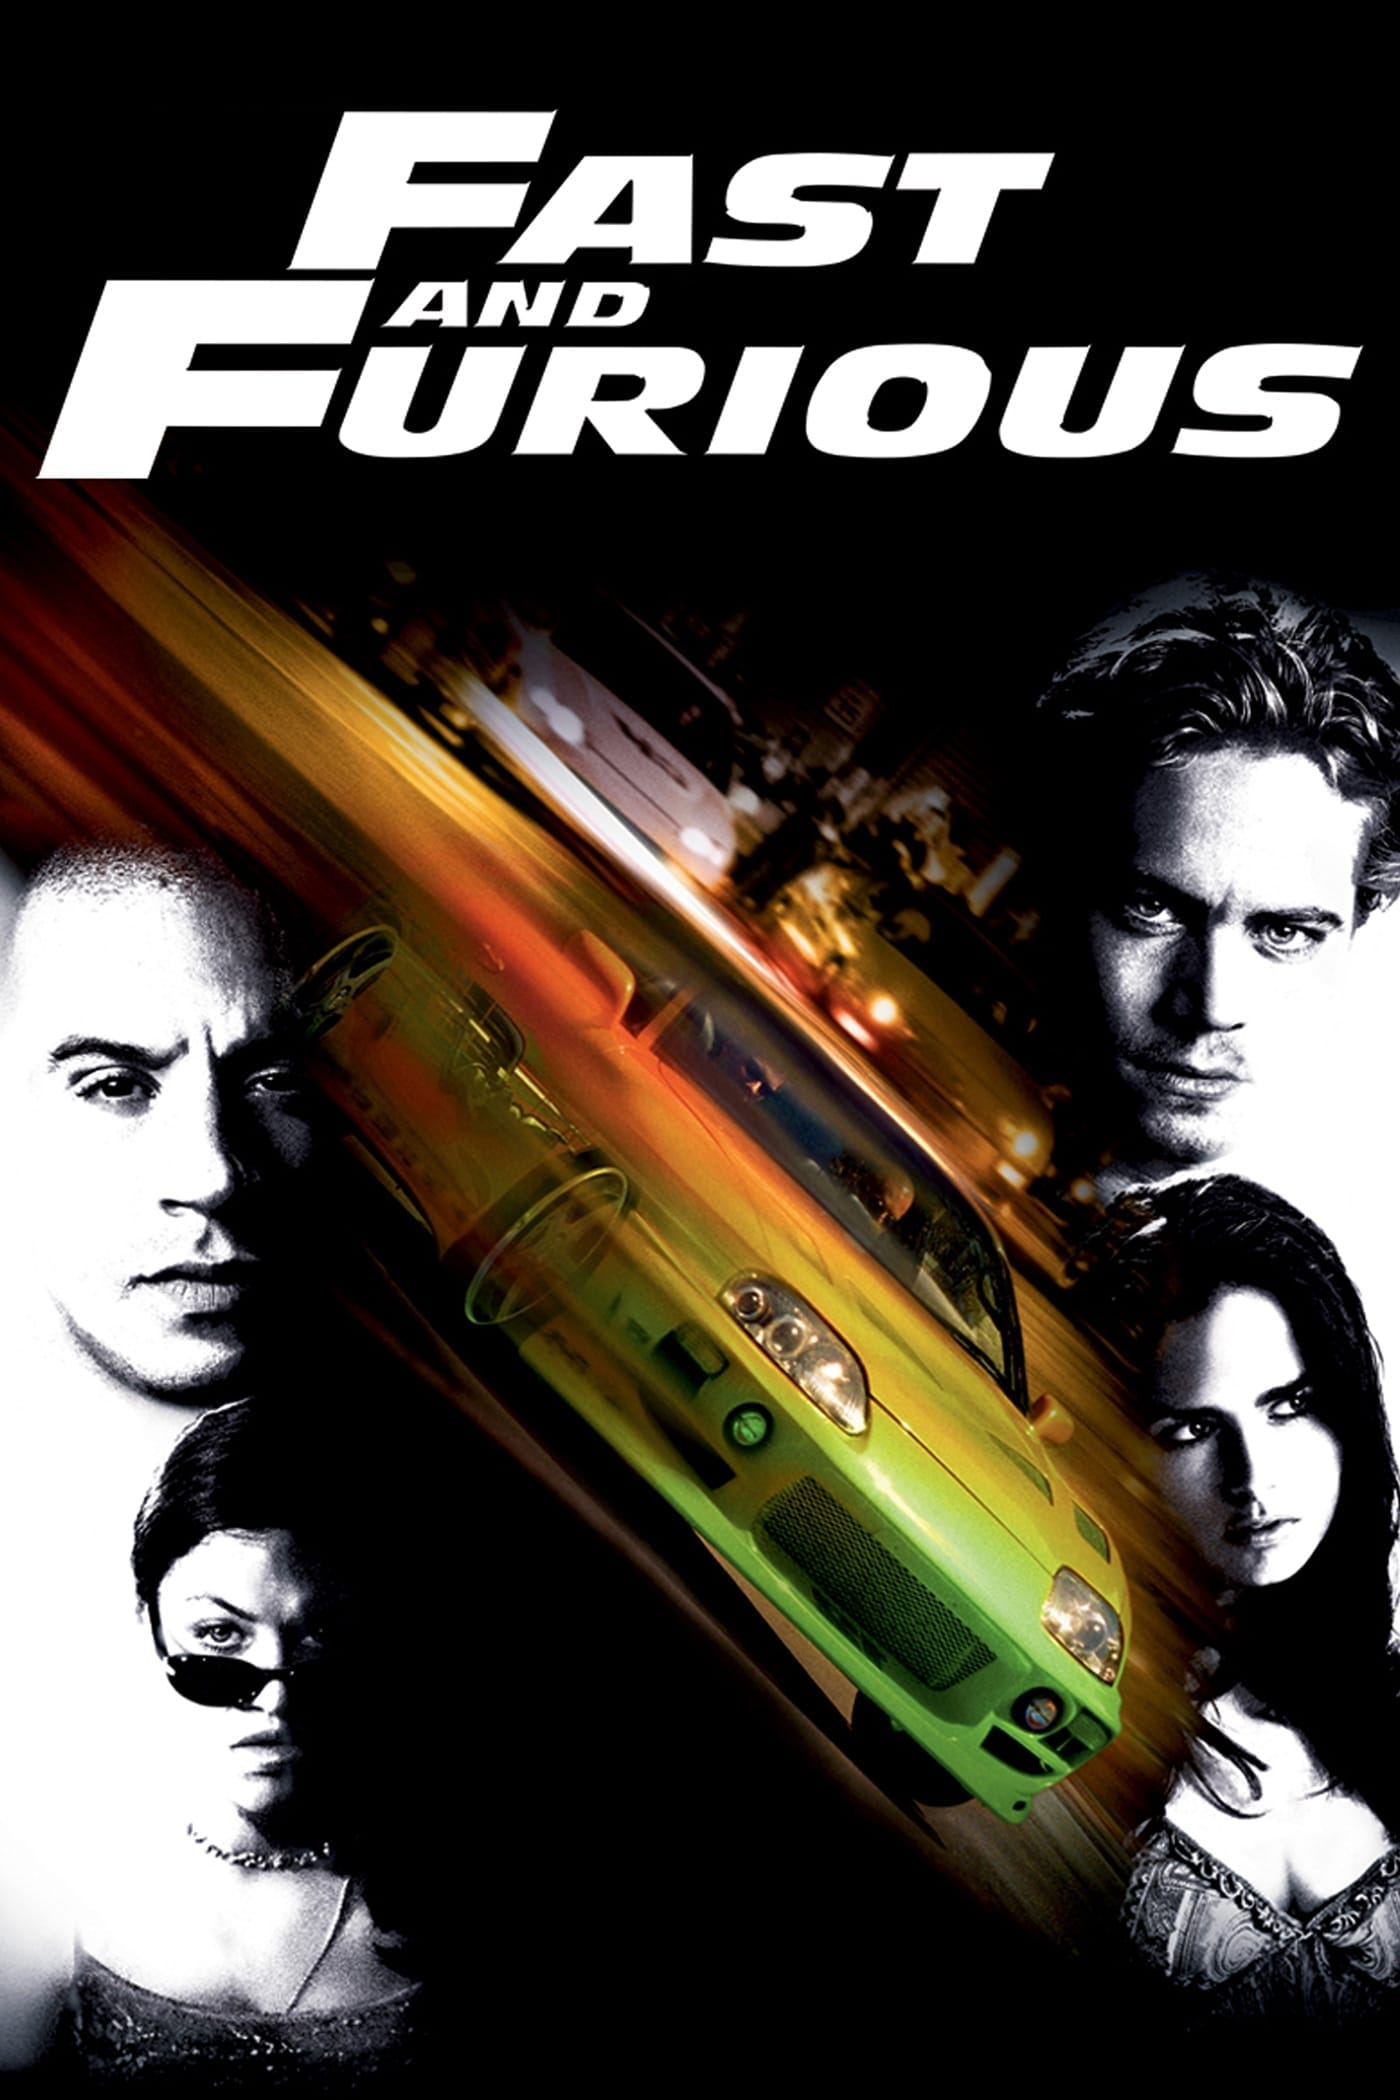 I Maghi Del Garage Streaming Ita Fast And Furious Streaming Film Ita